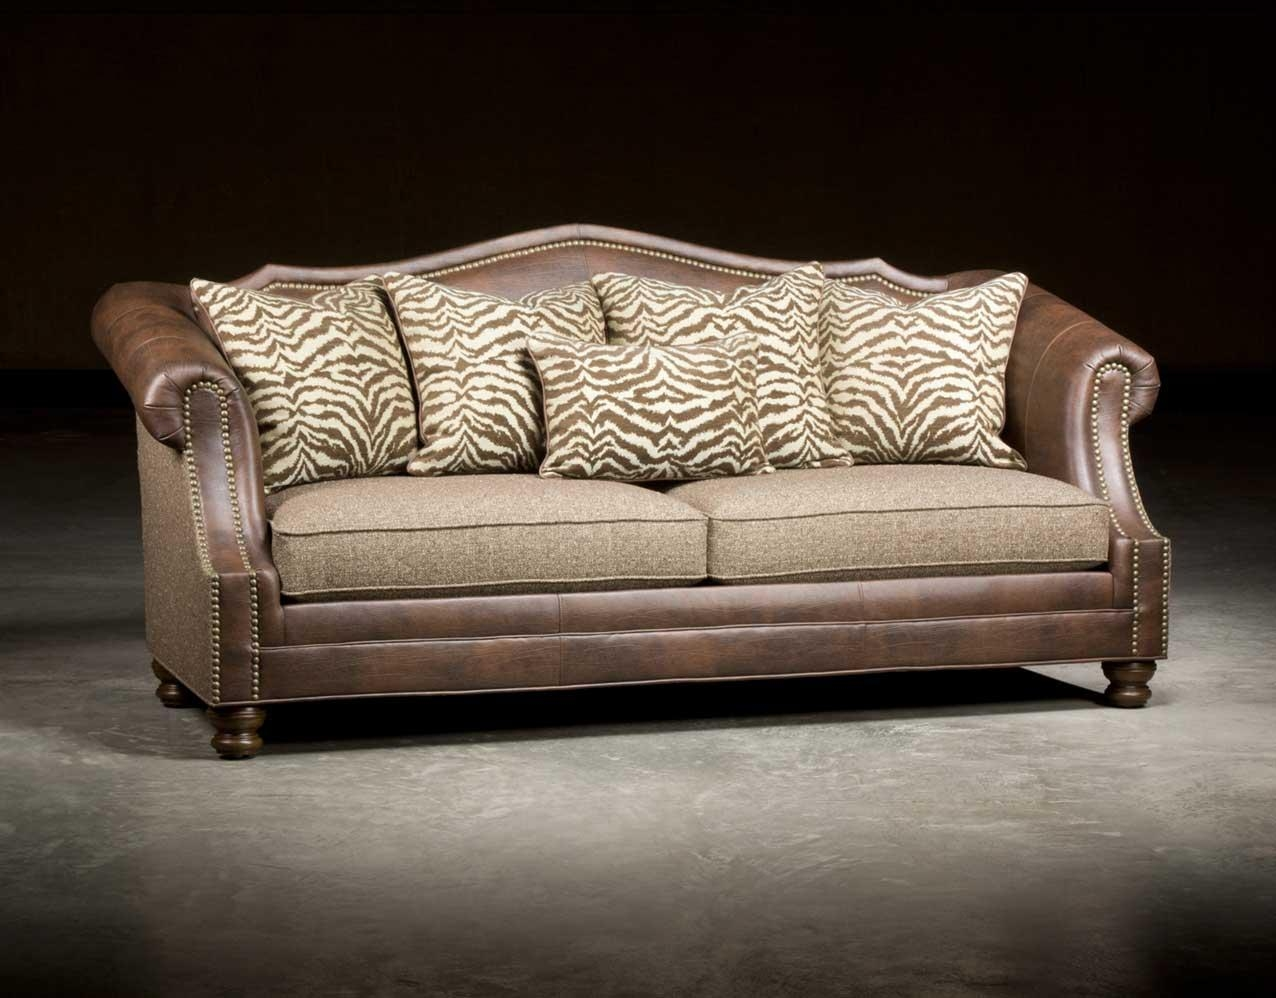 High End Sectional Sofas Throughout High End Sofa (Image 9 of 20)